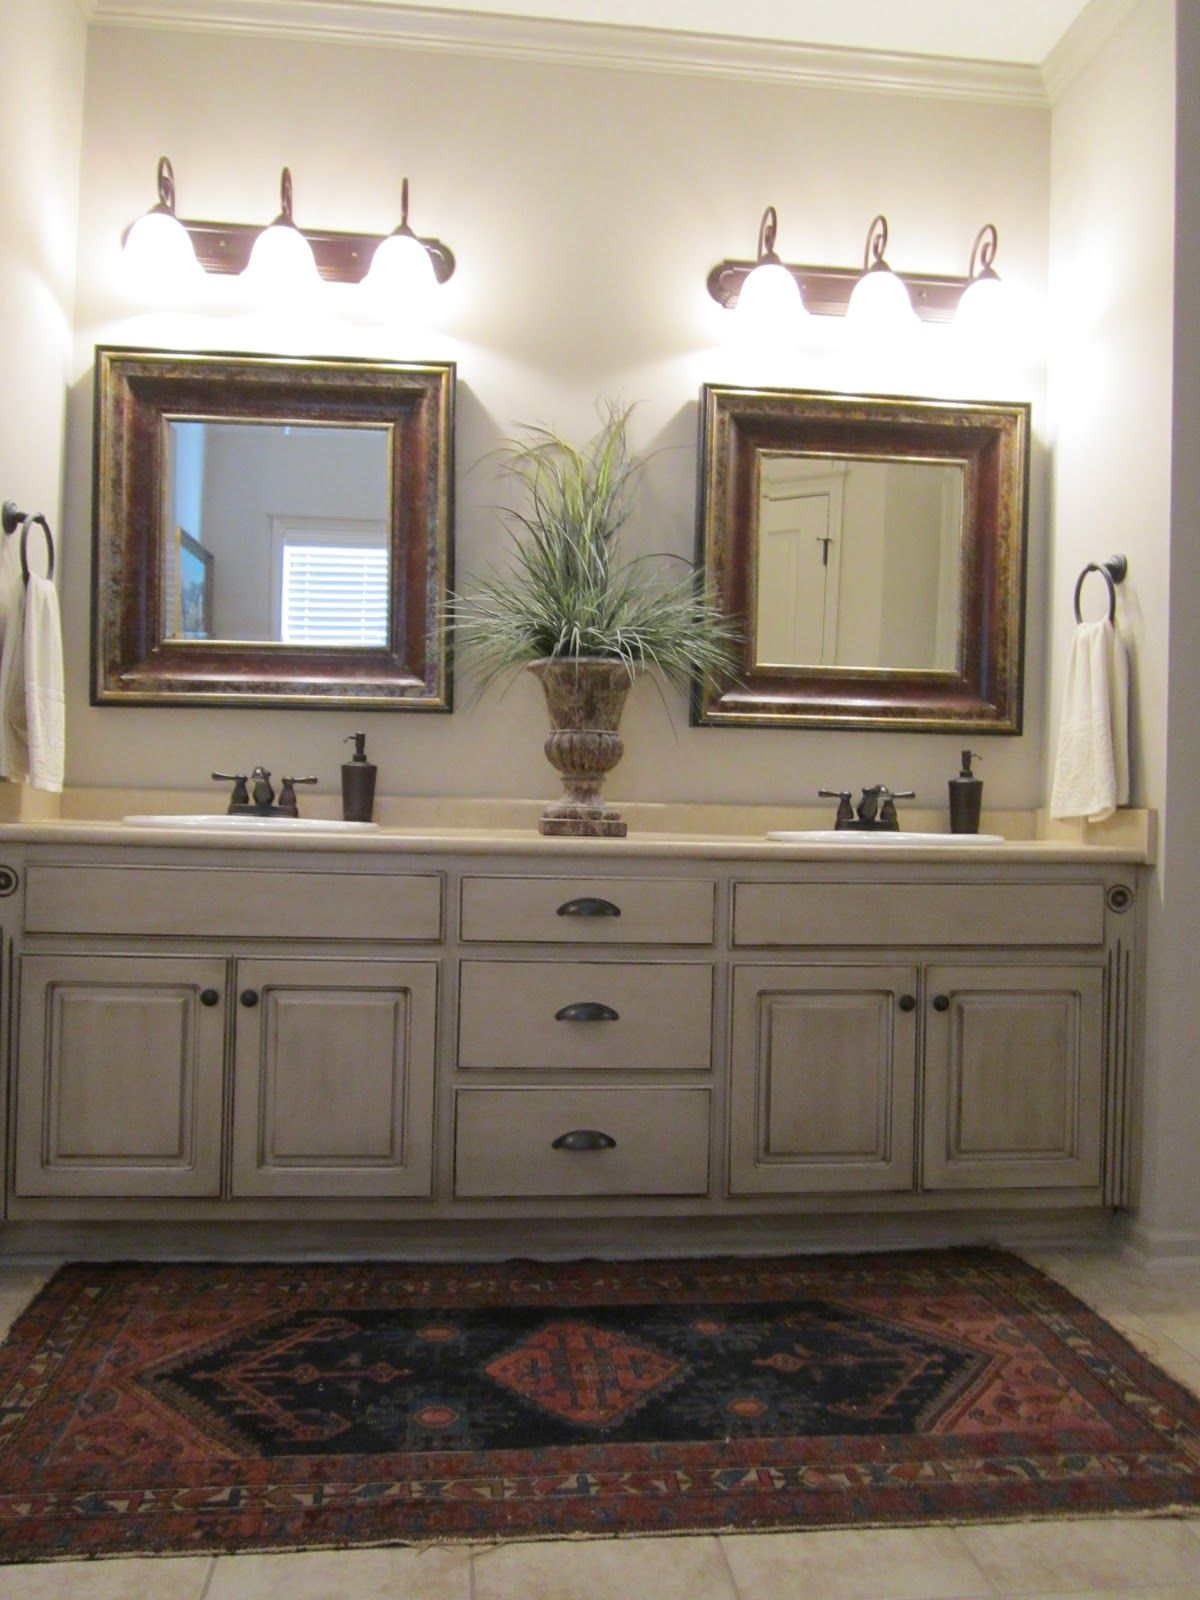 Love these painted bathroom cabinets and the lights. What